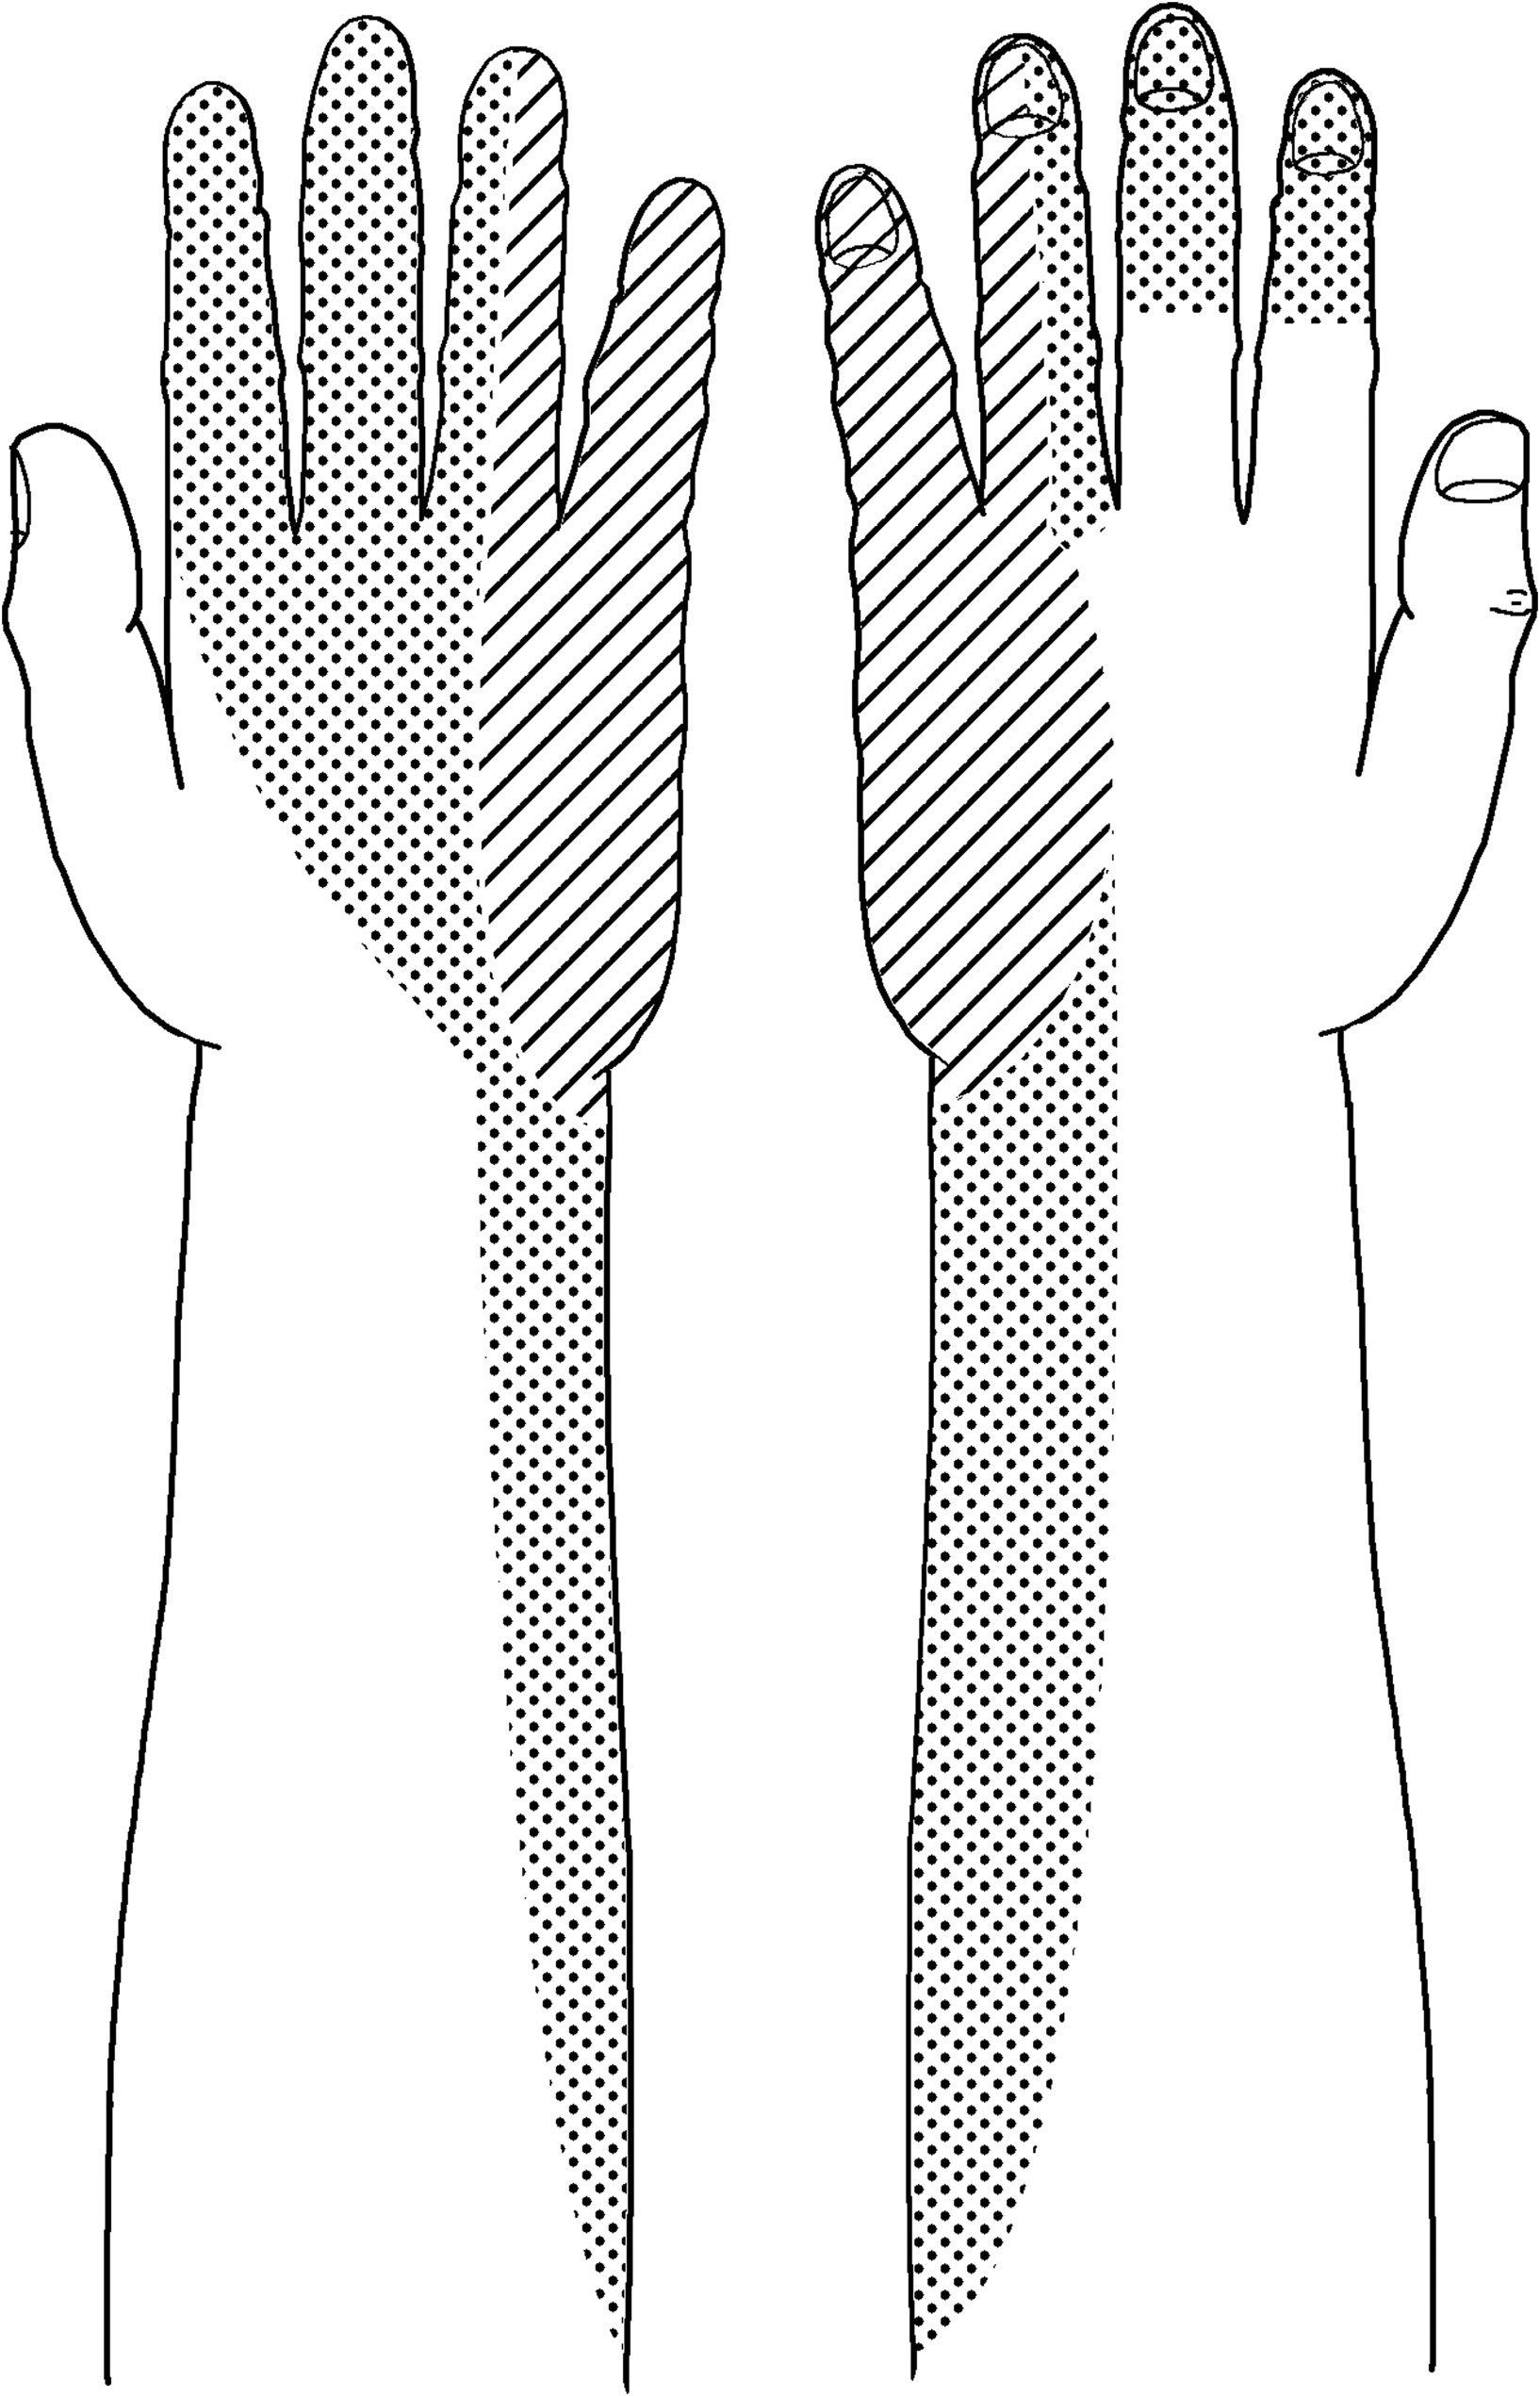 Transfer Of The Radial Branch Of The Superficial Radial